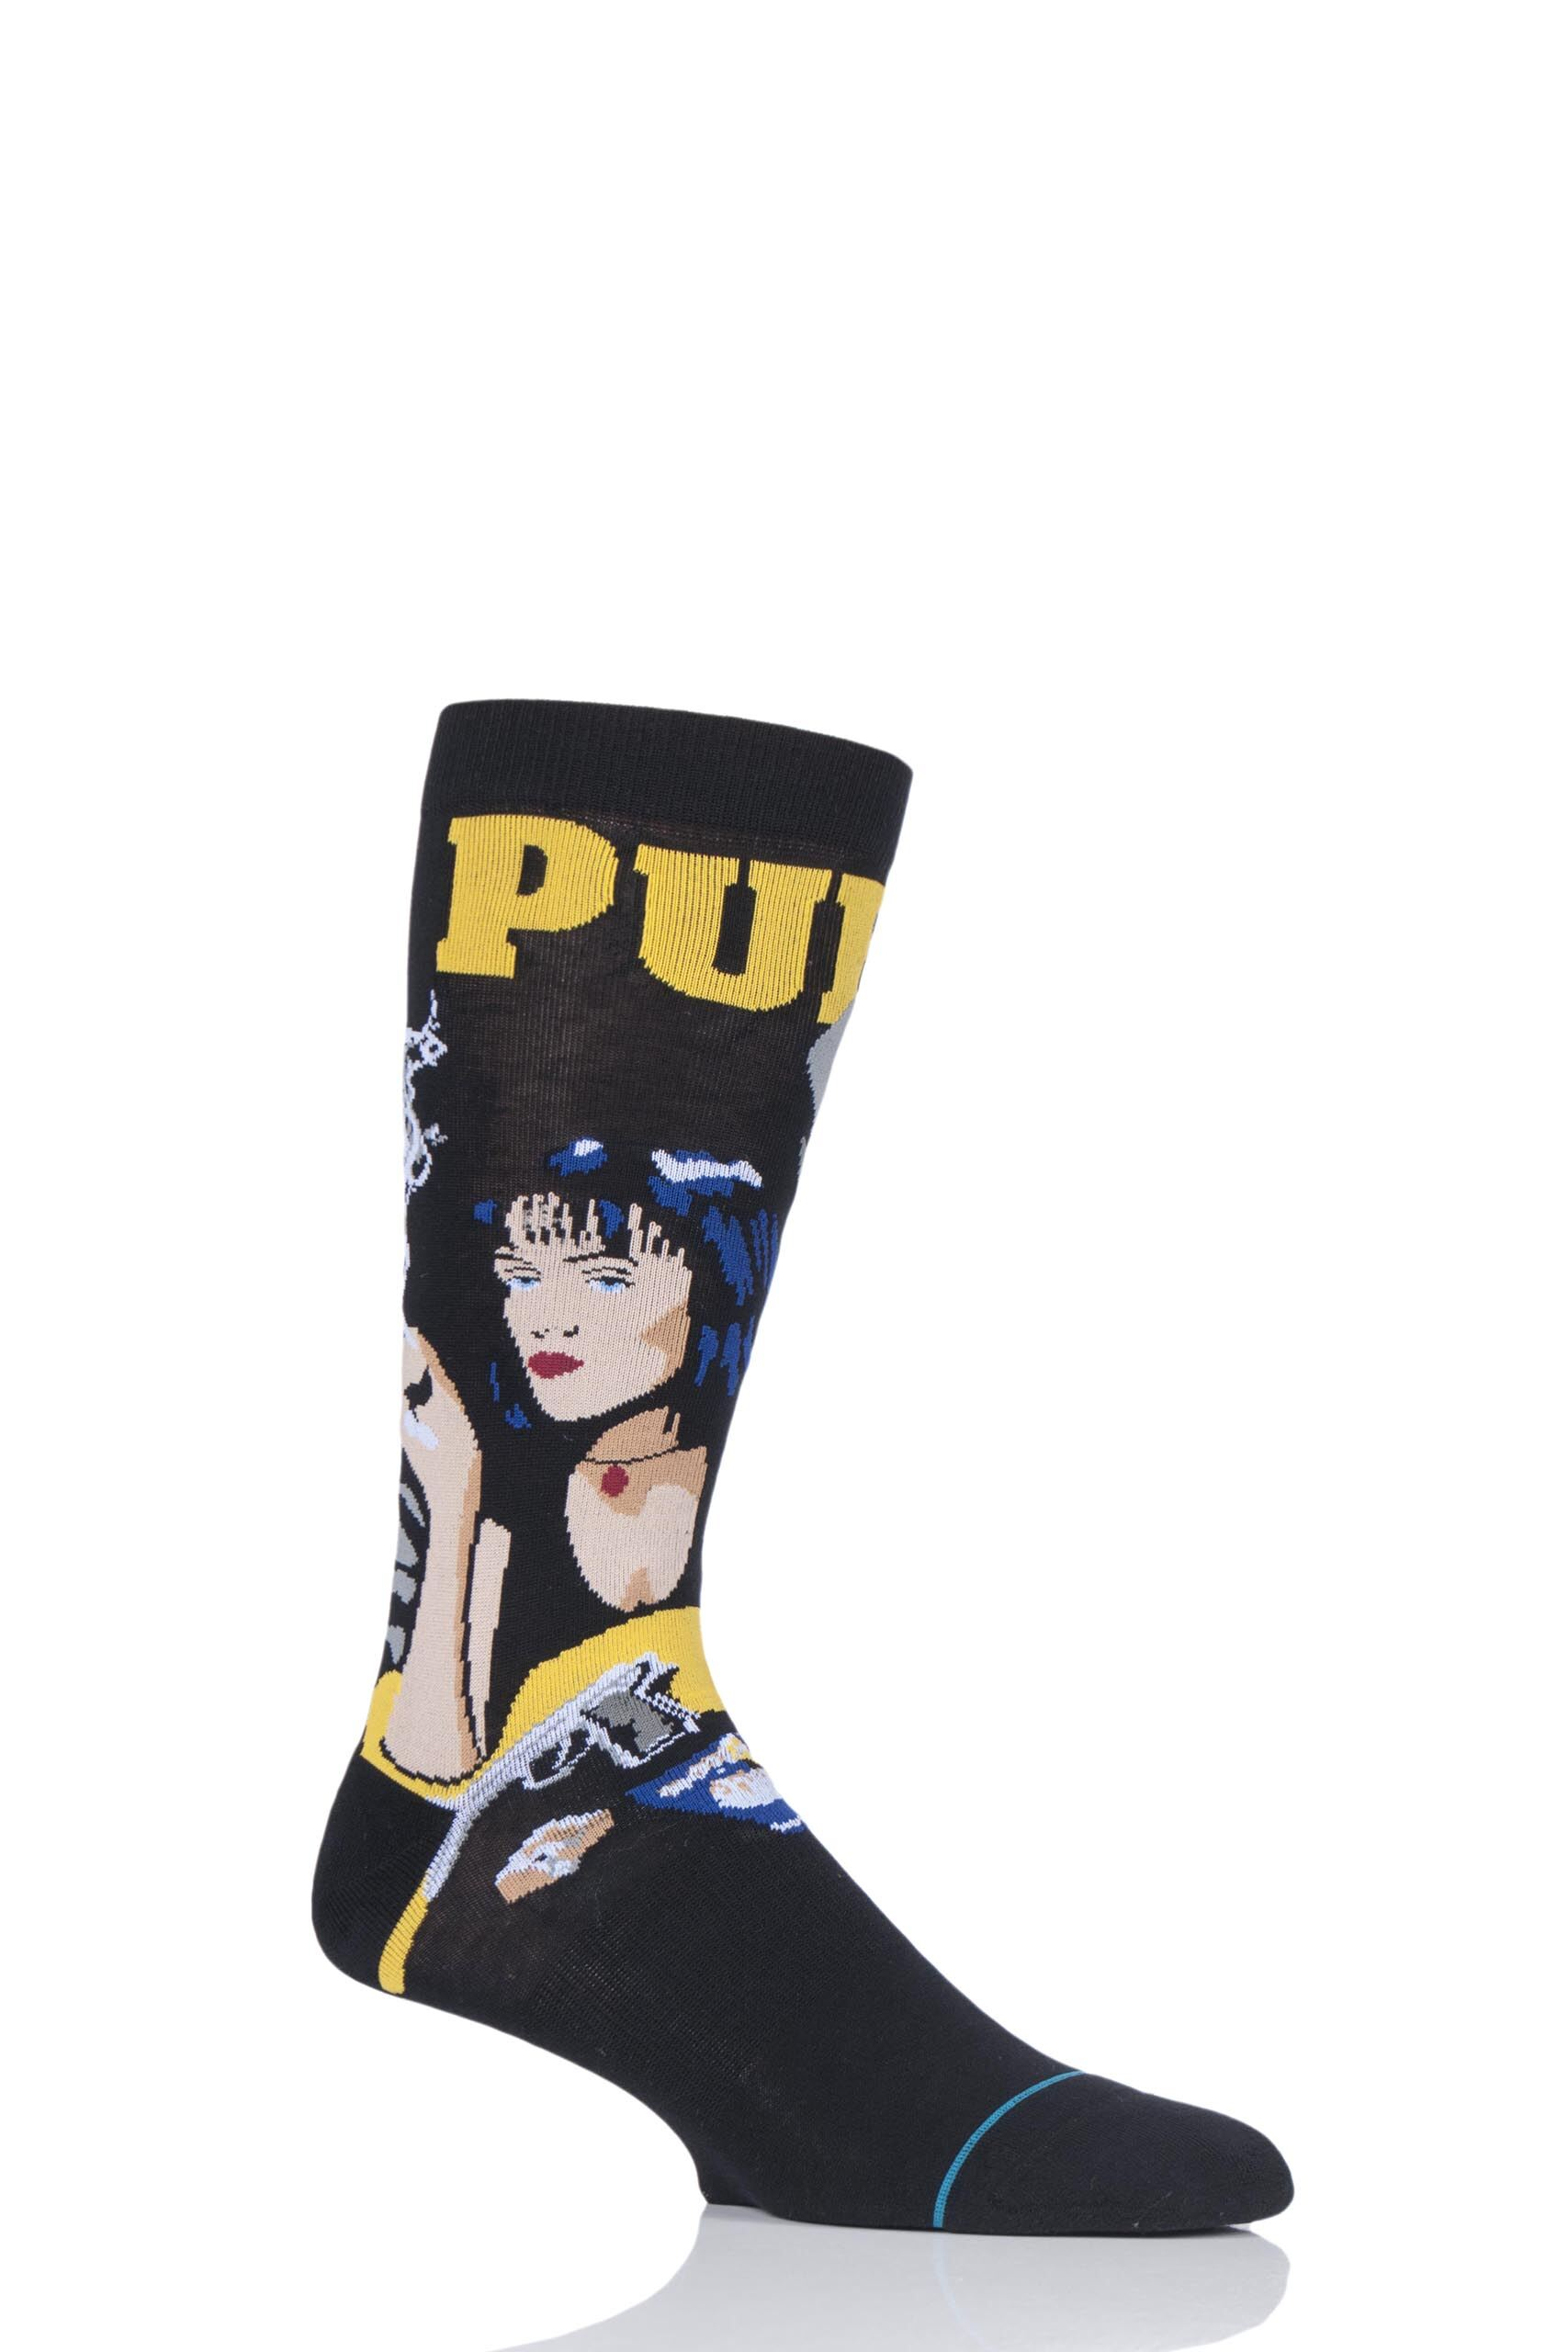 Image of 1 Pair Black Quentin Tarantino Collection Pulp Fiction Socks Men's 5.5-8 Mens - Stance